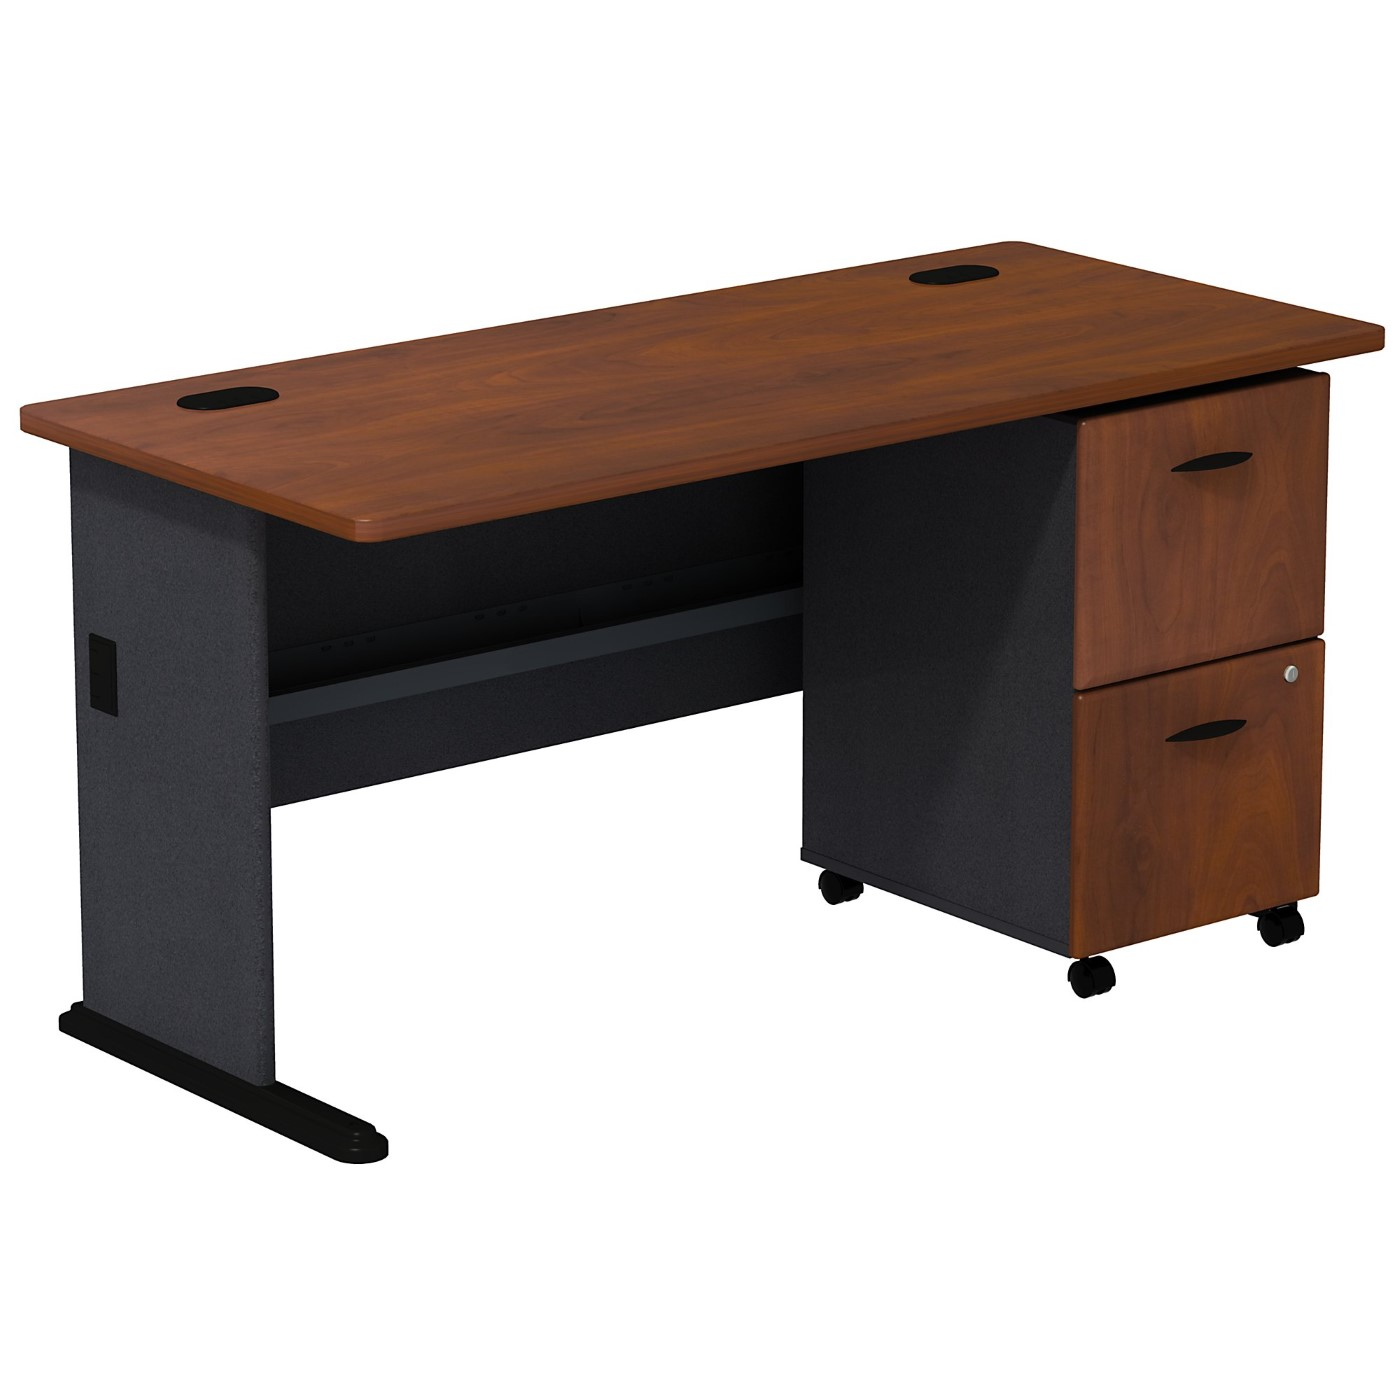 BUSH BUSINESS FURNITURE SERIES A DESK WITH 2 DRAWER MOBILE PEDESTAL. FREE SHIPPING